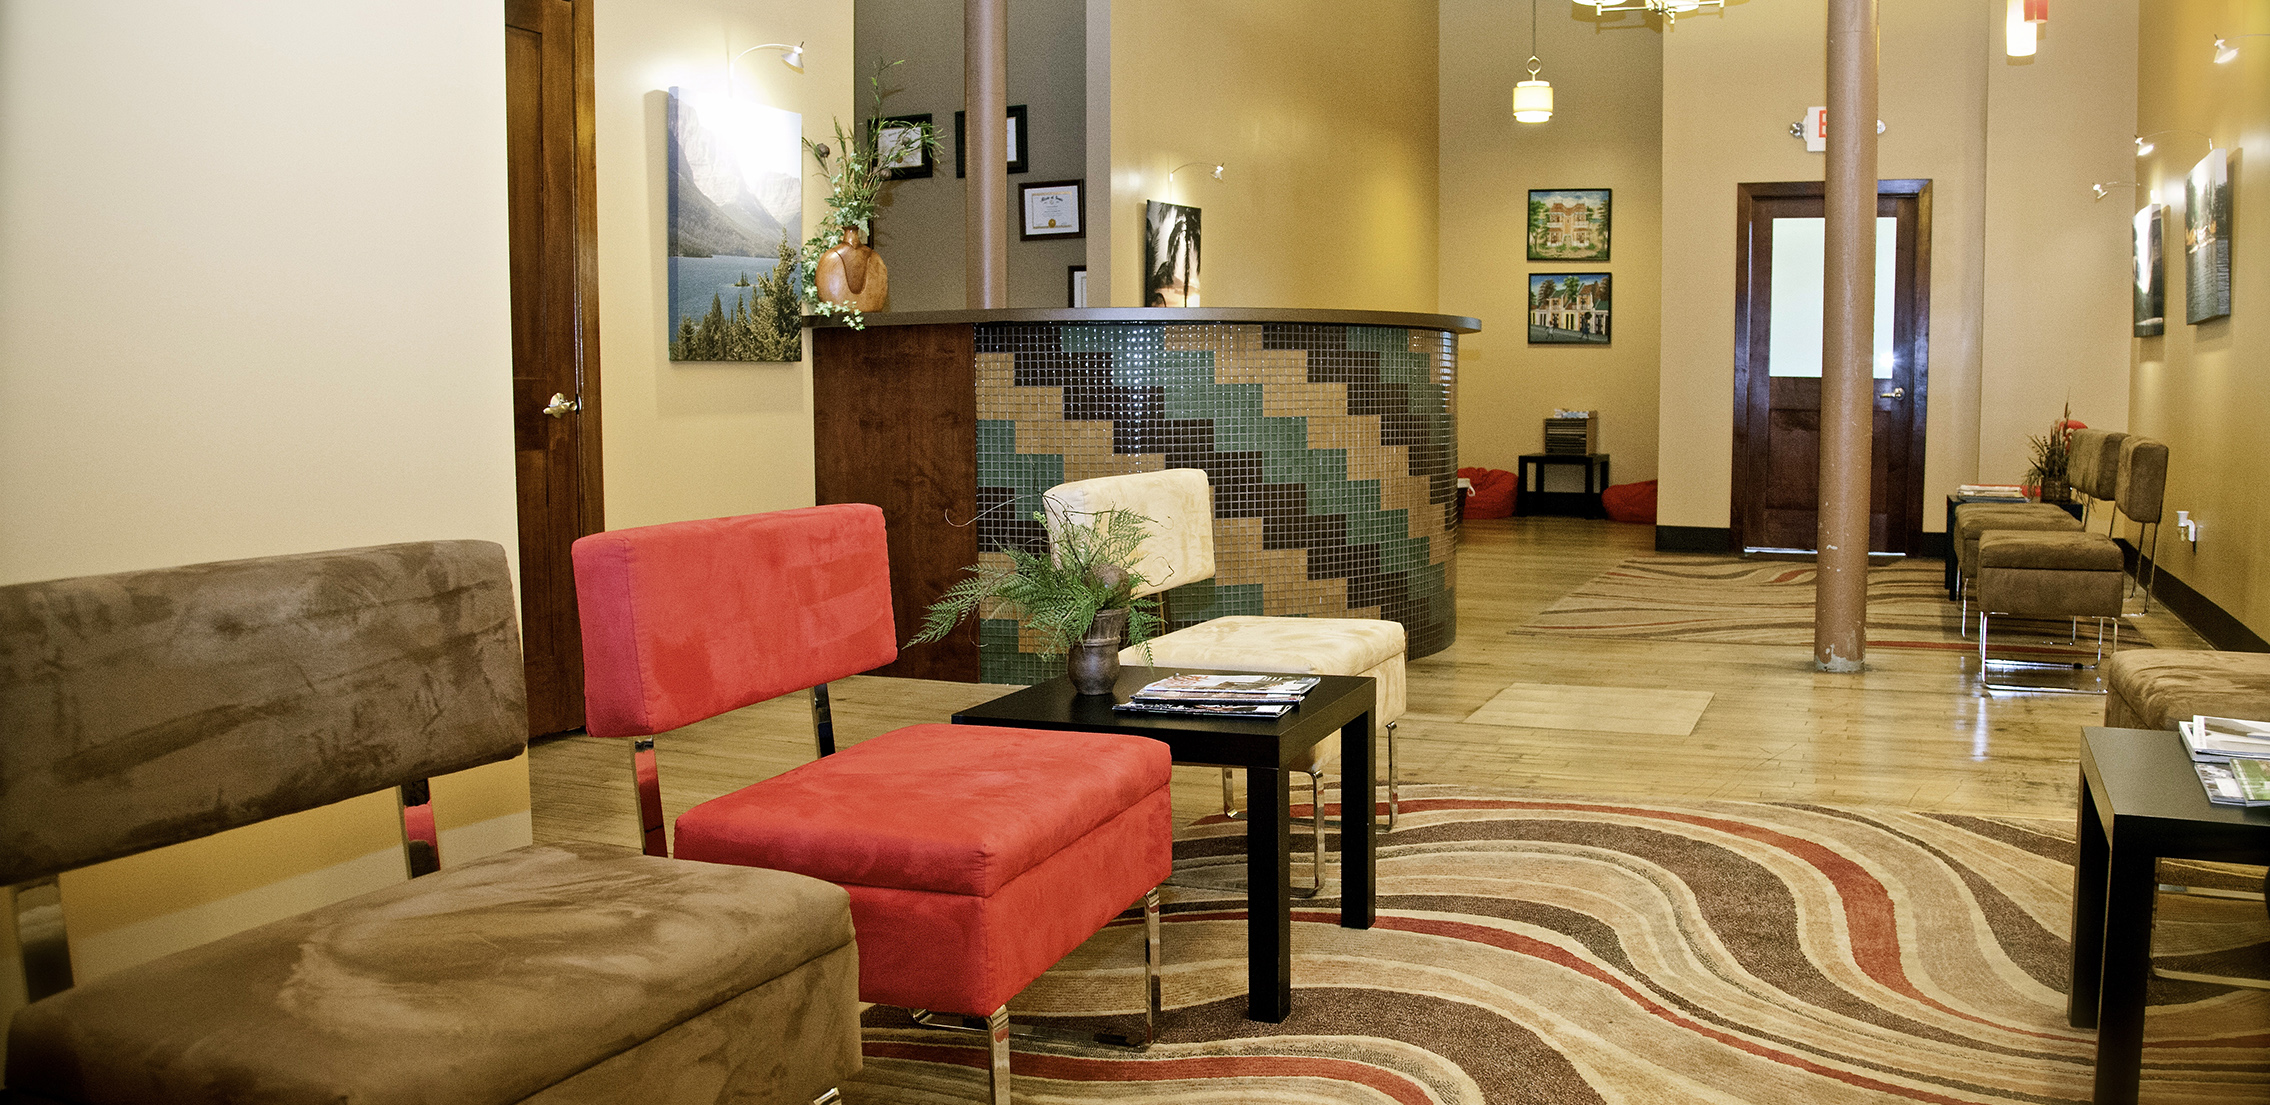 waiting area inside the dental office